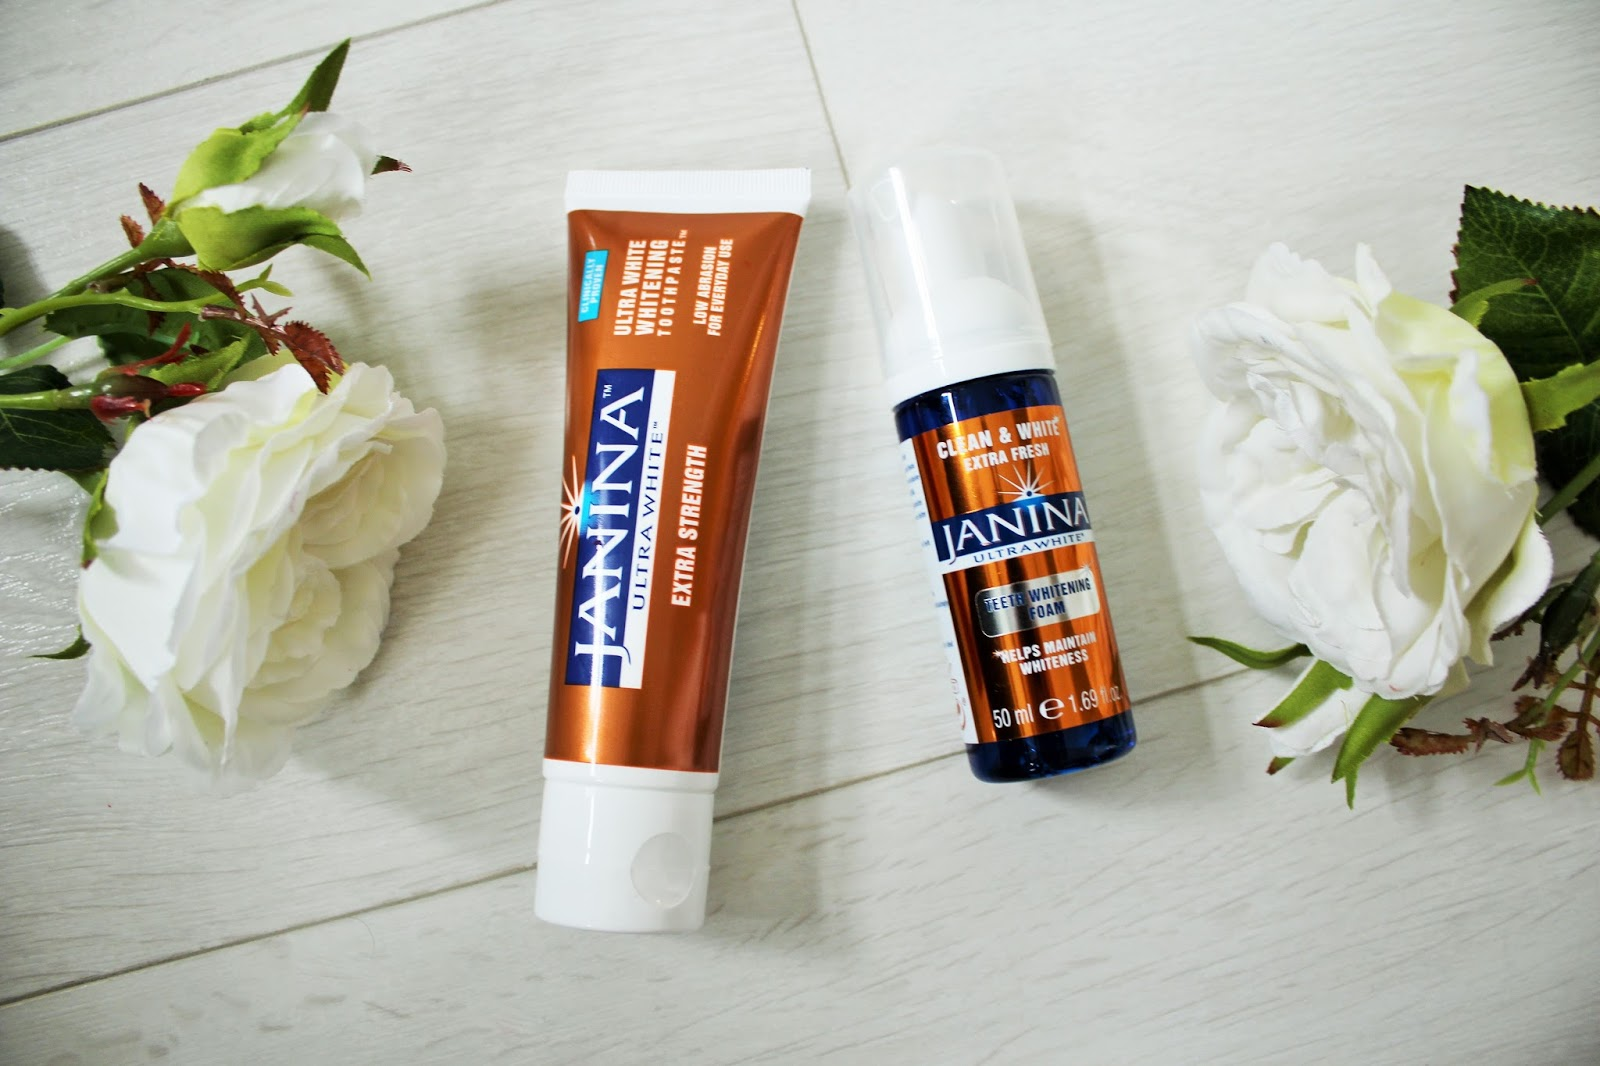 Budget Friendly Tips For A Whiter Smile - 2 - Janina Ultra White